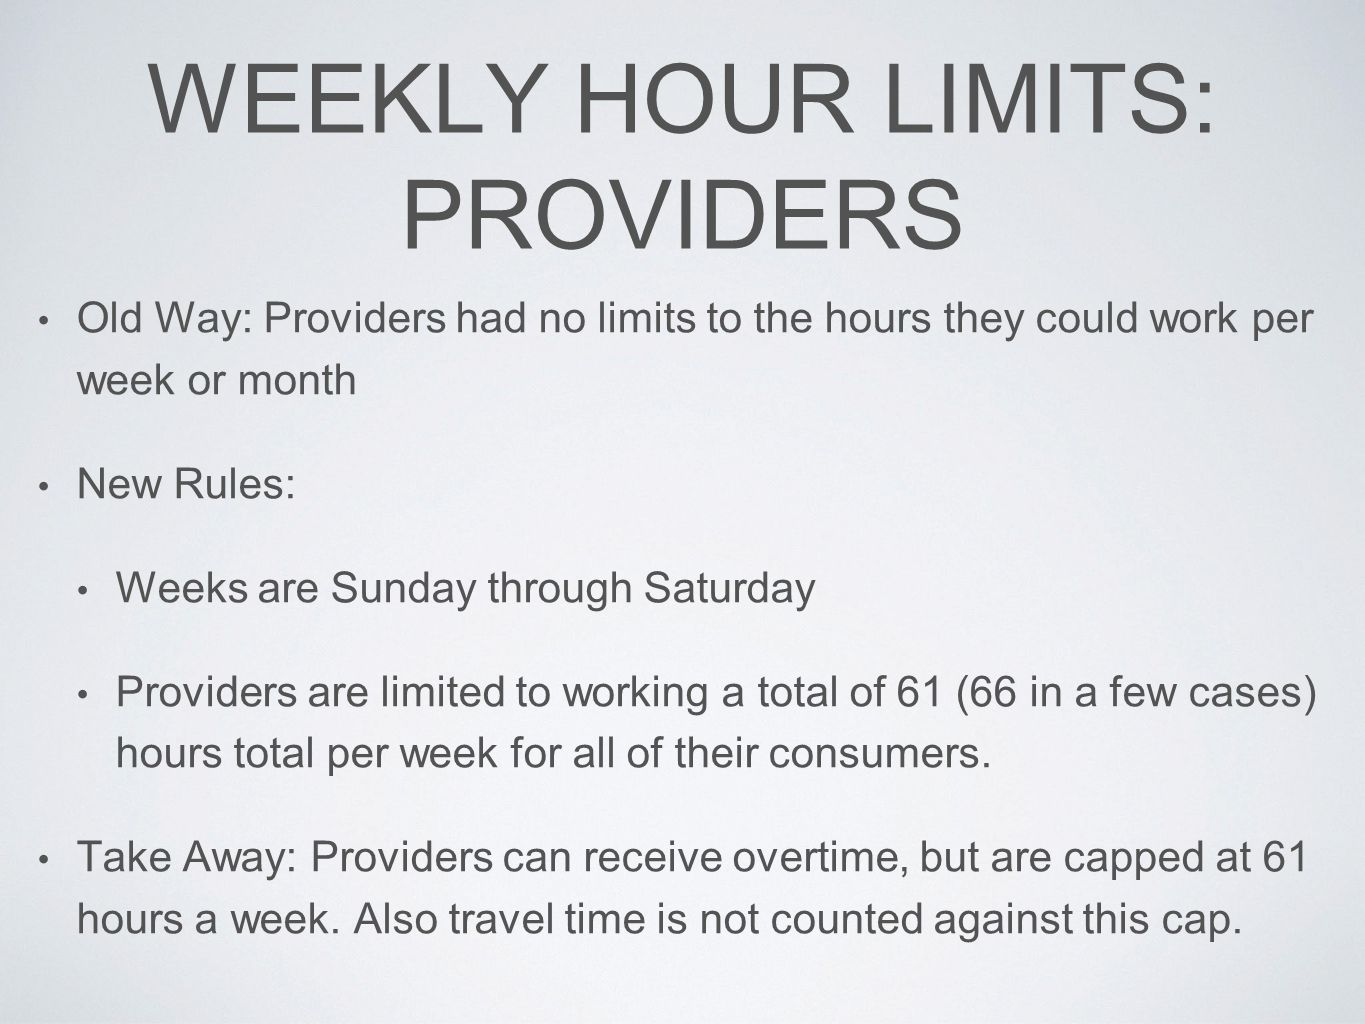 WEEKLY HOUR LIMITS: PROVIDERS